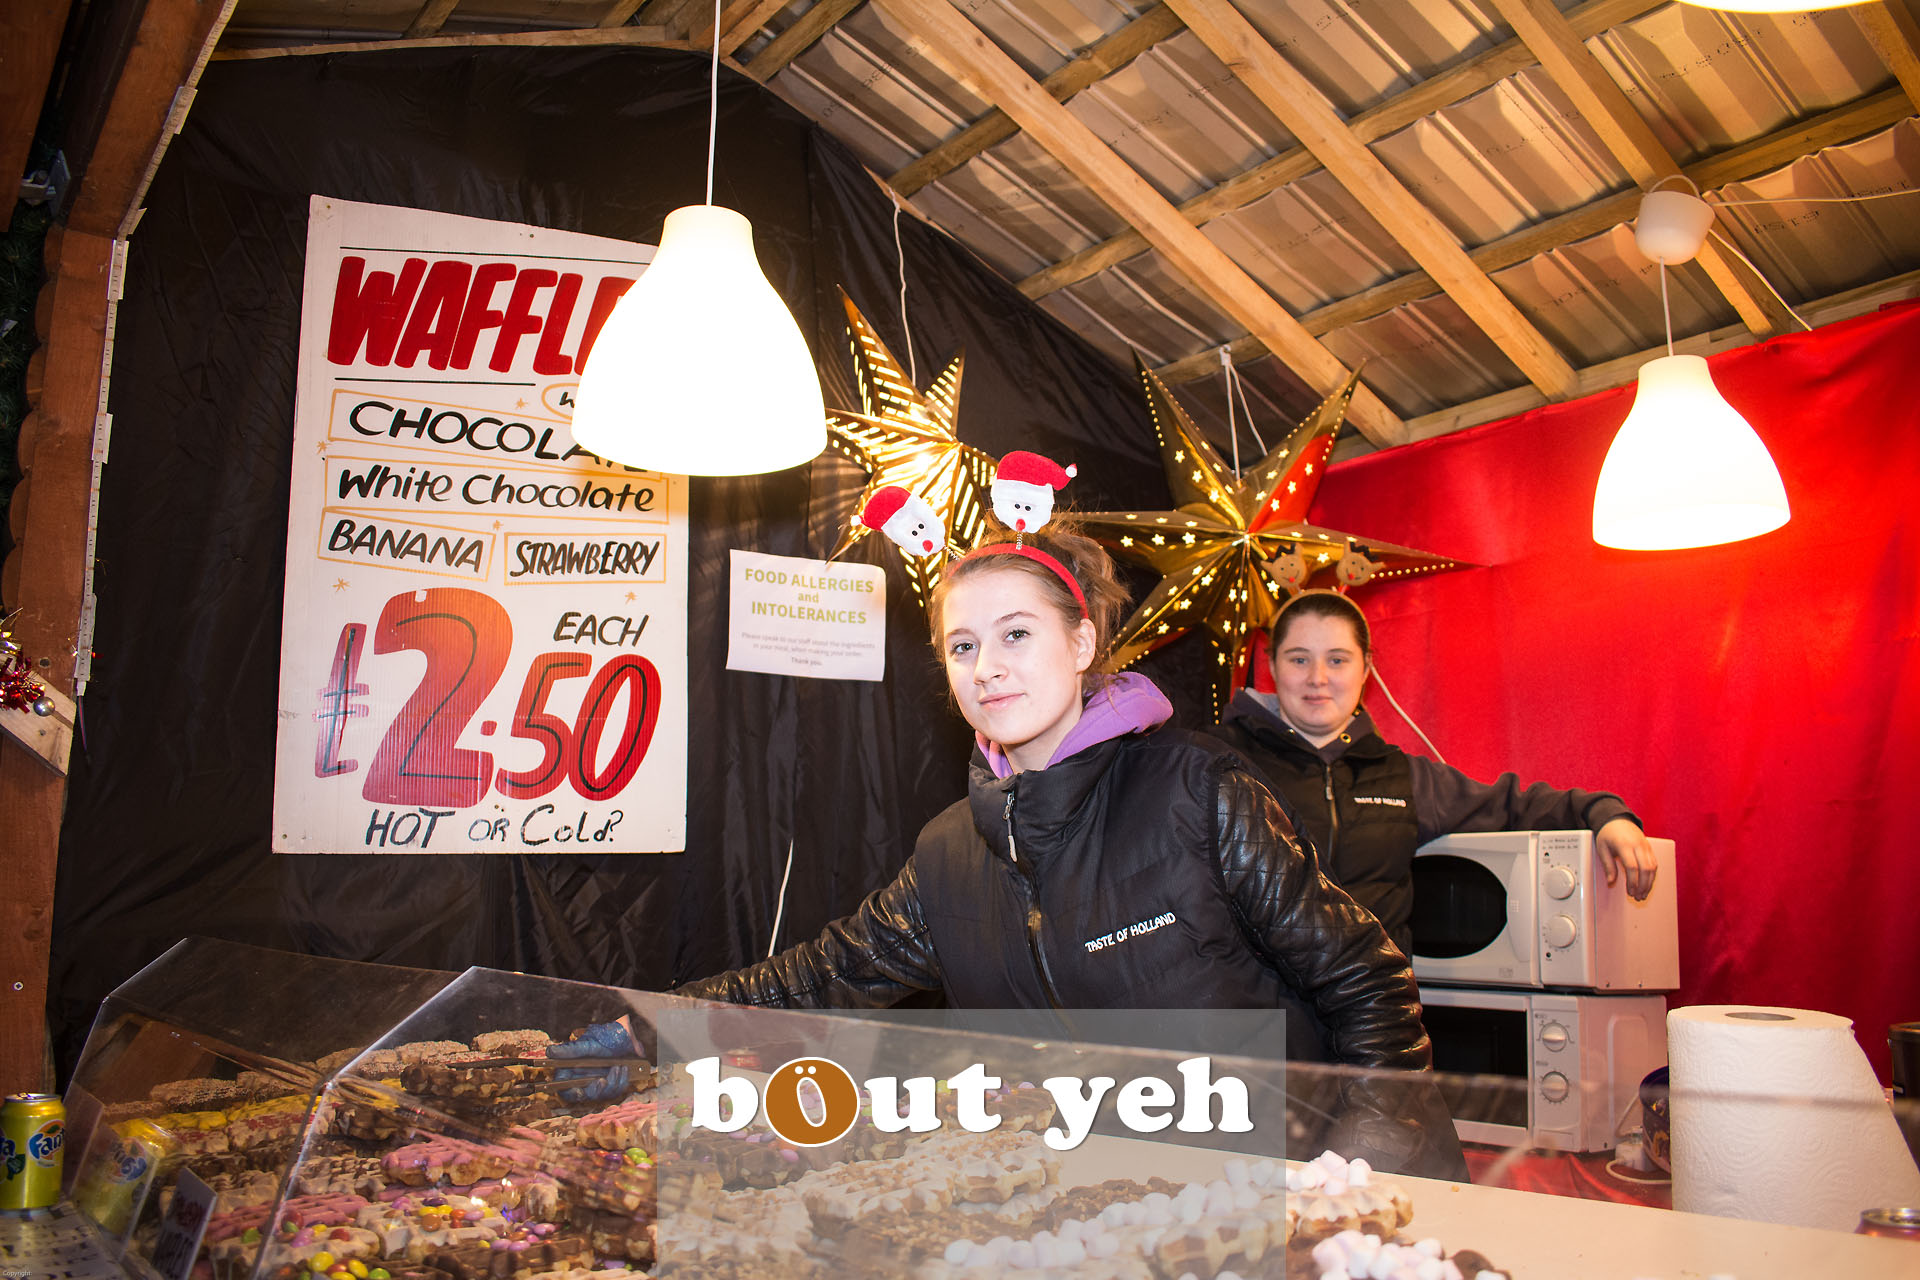 Two women at Belgian waffle stand, Belfast Continental Christmas Market, City Hall, Belfast, Northern Ireland - bout yeh photographers Belfast photo 3290.